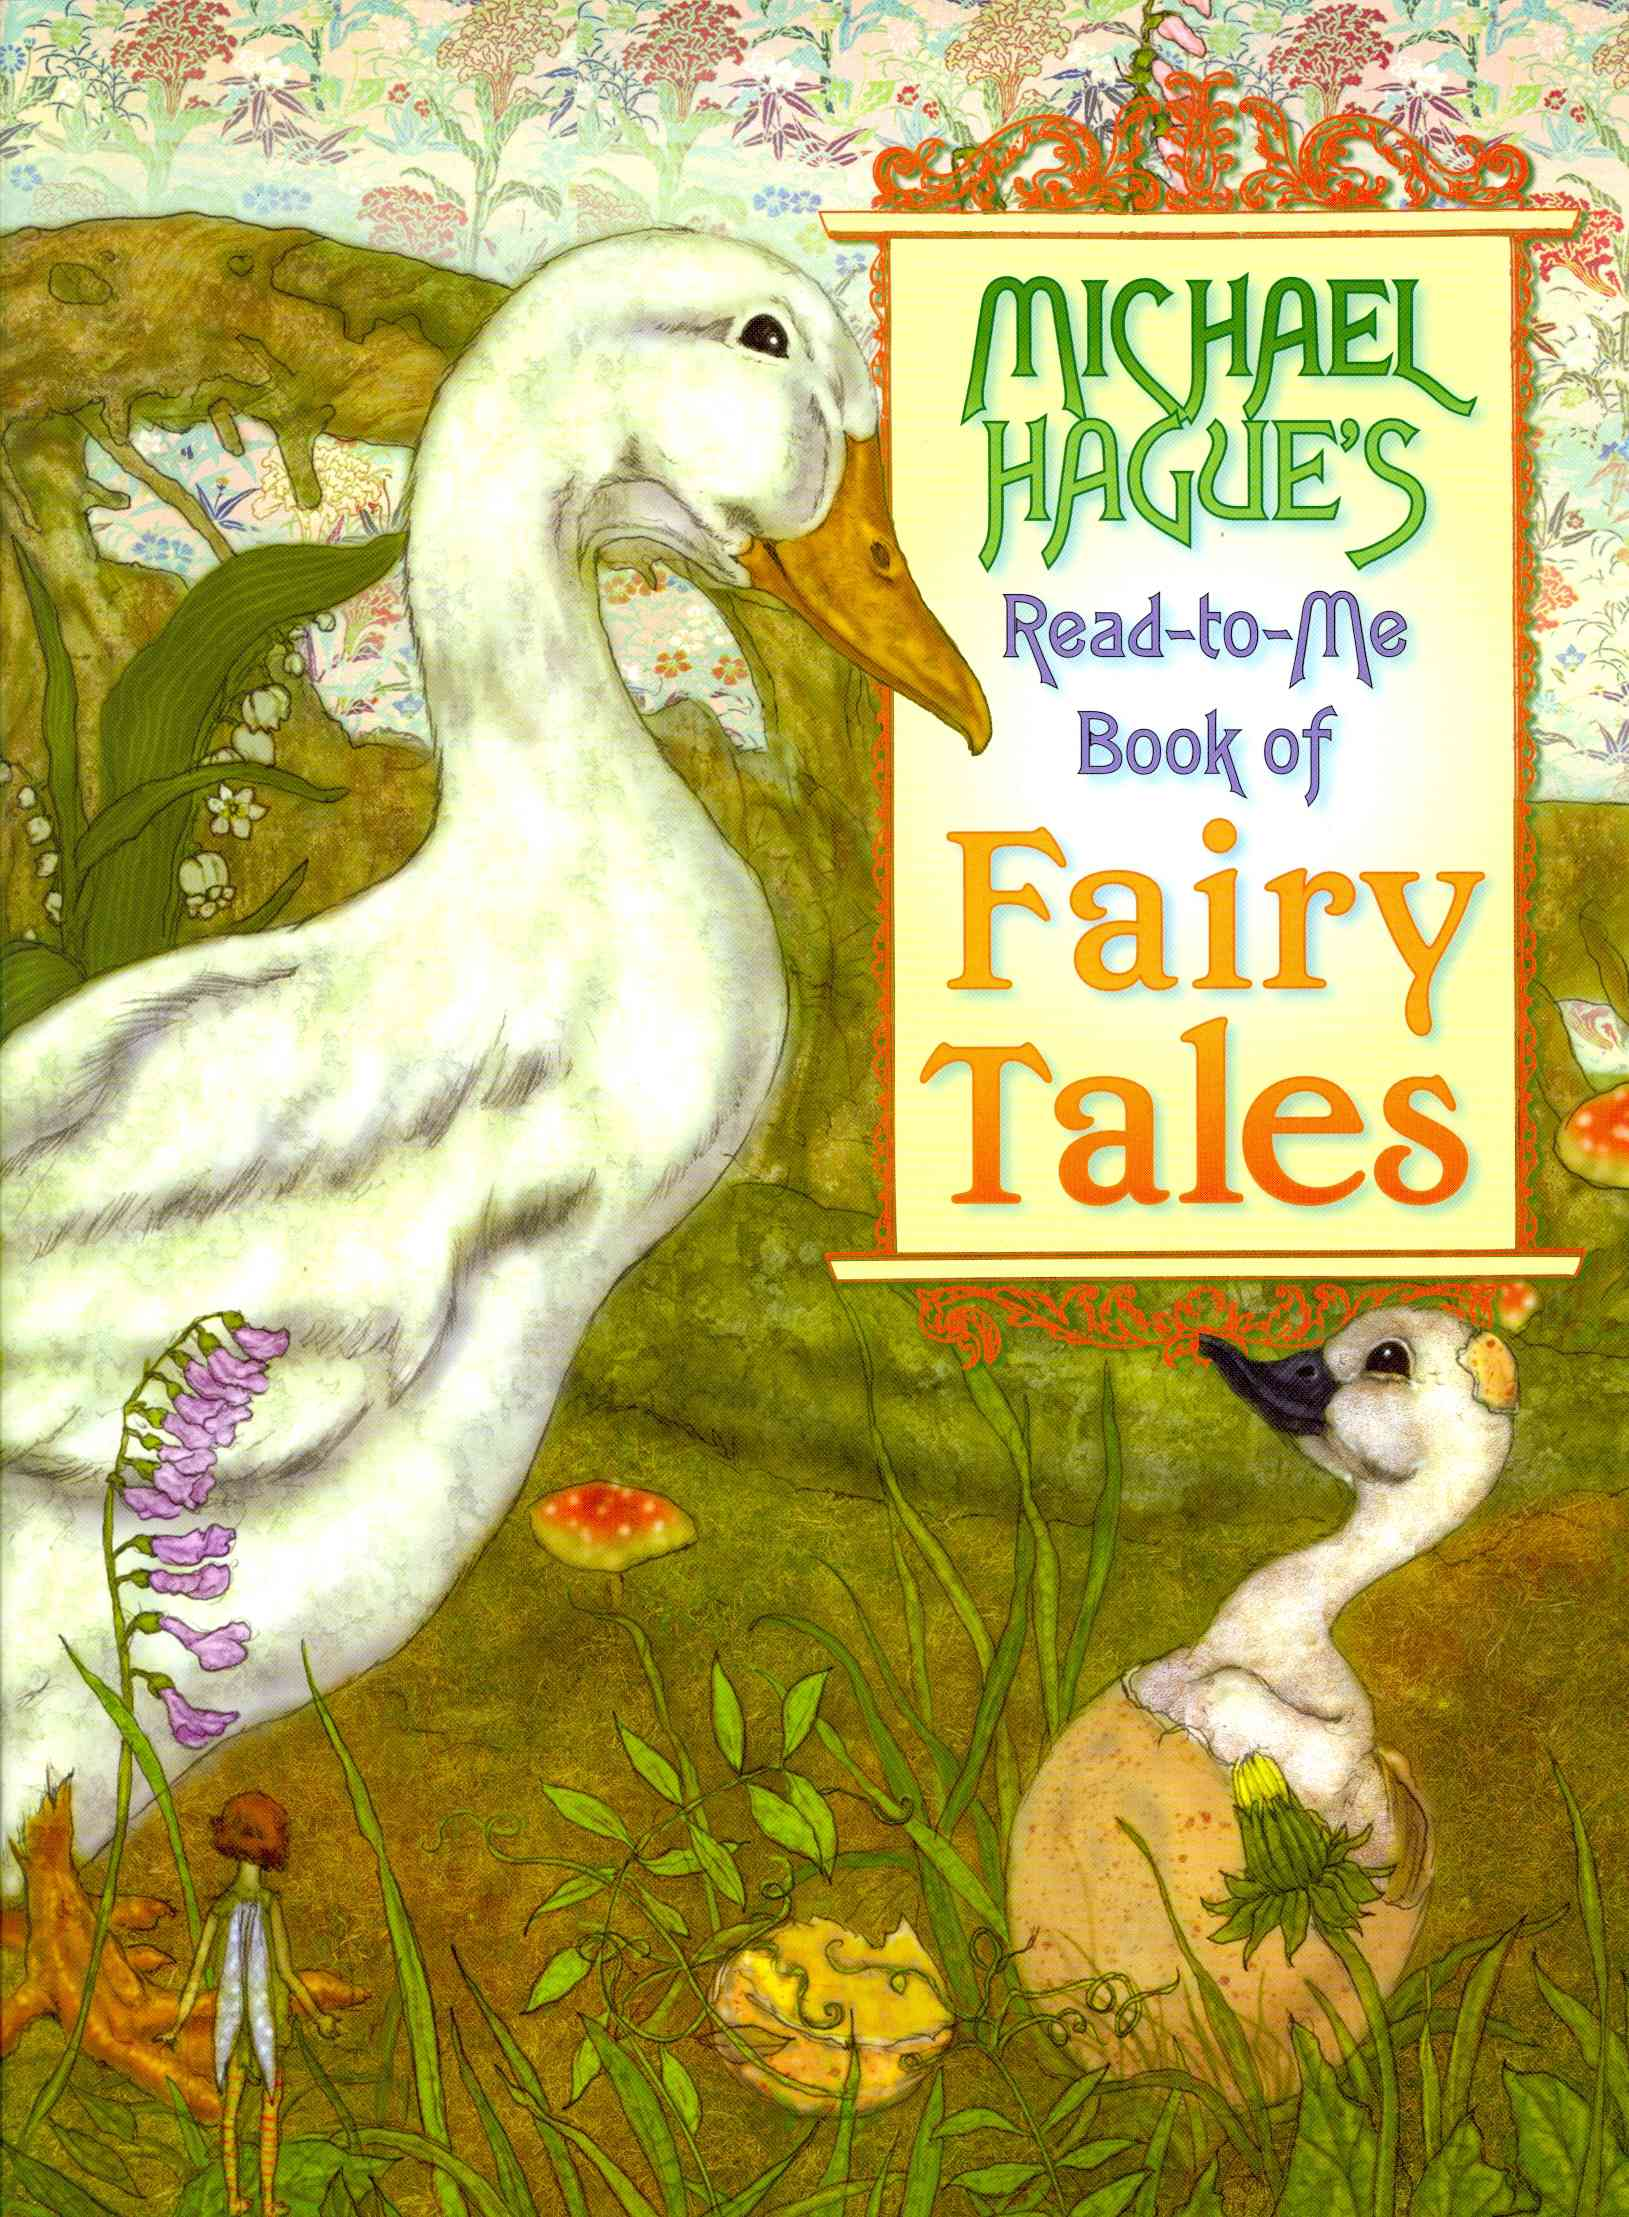 Michael Hague's Read-to-Me Book of Fairy Tales By Hague, Michael/ Hague, Michael (ILT)